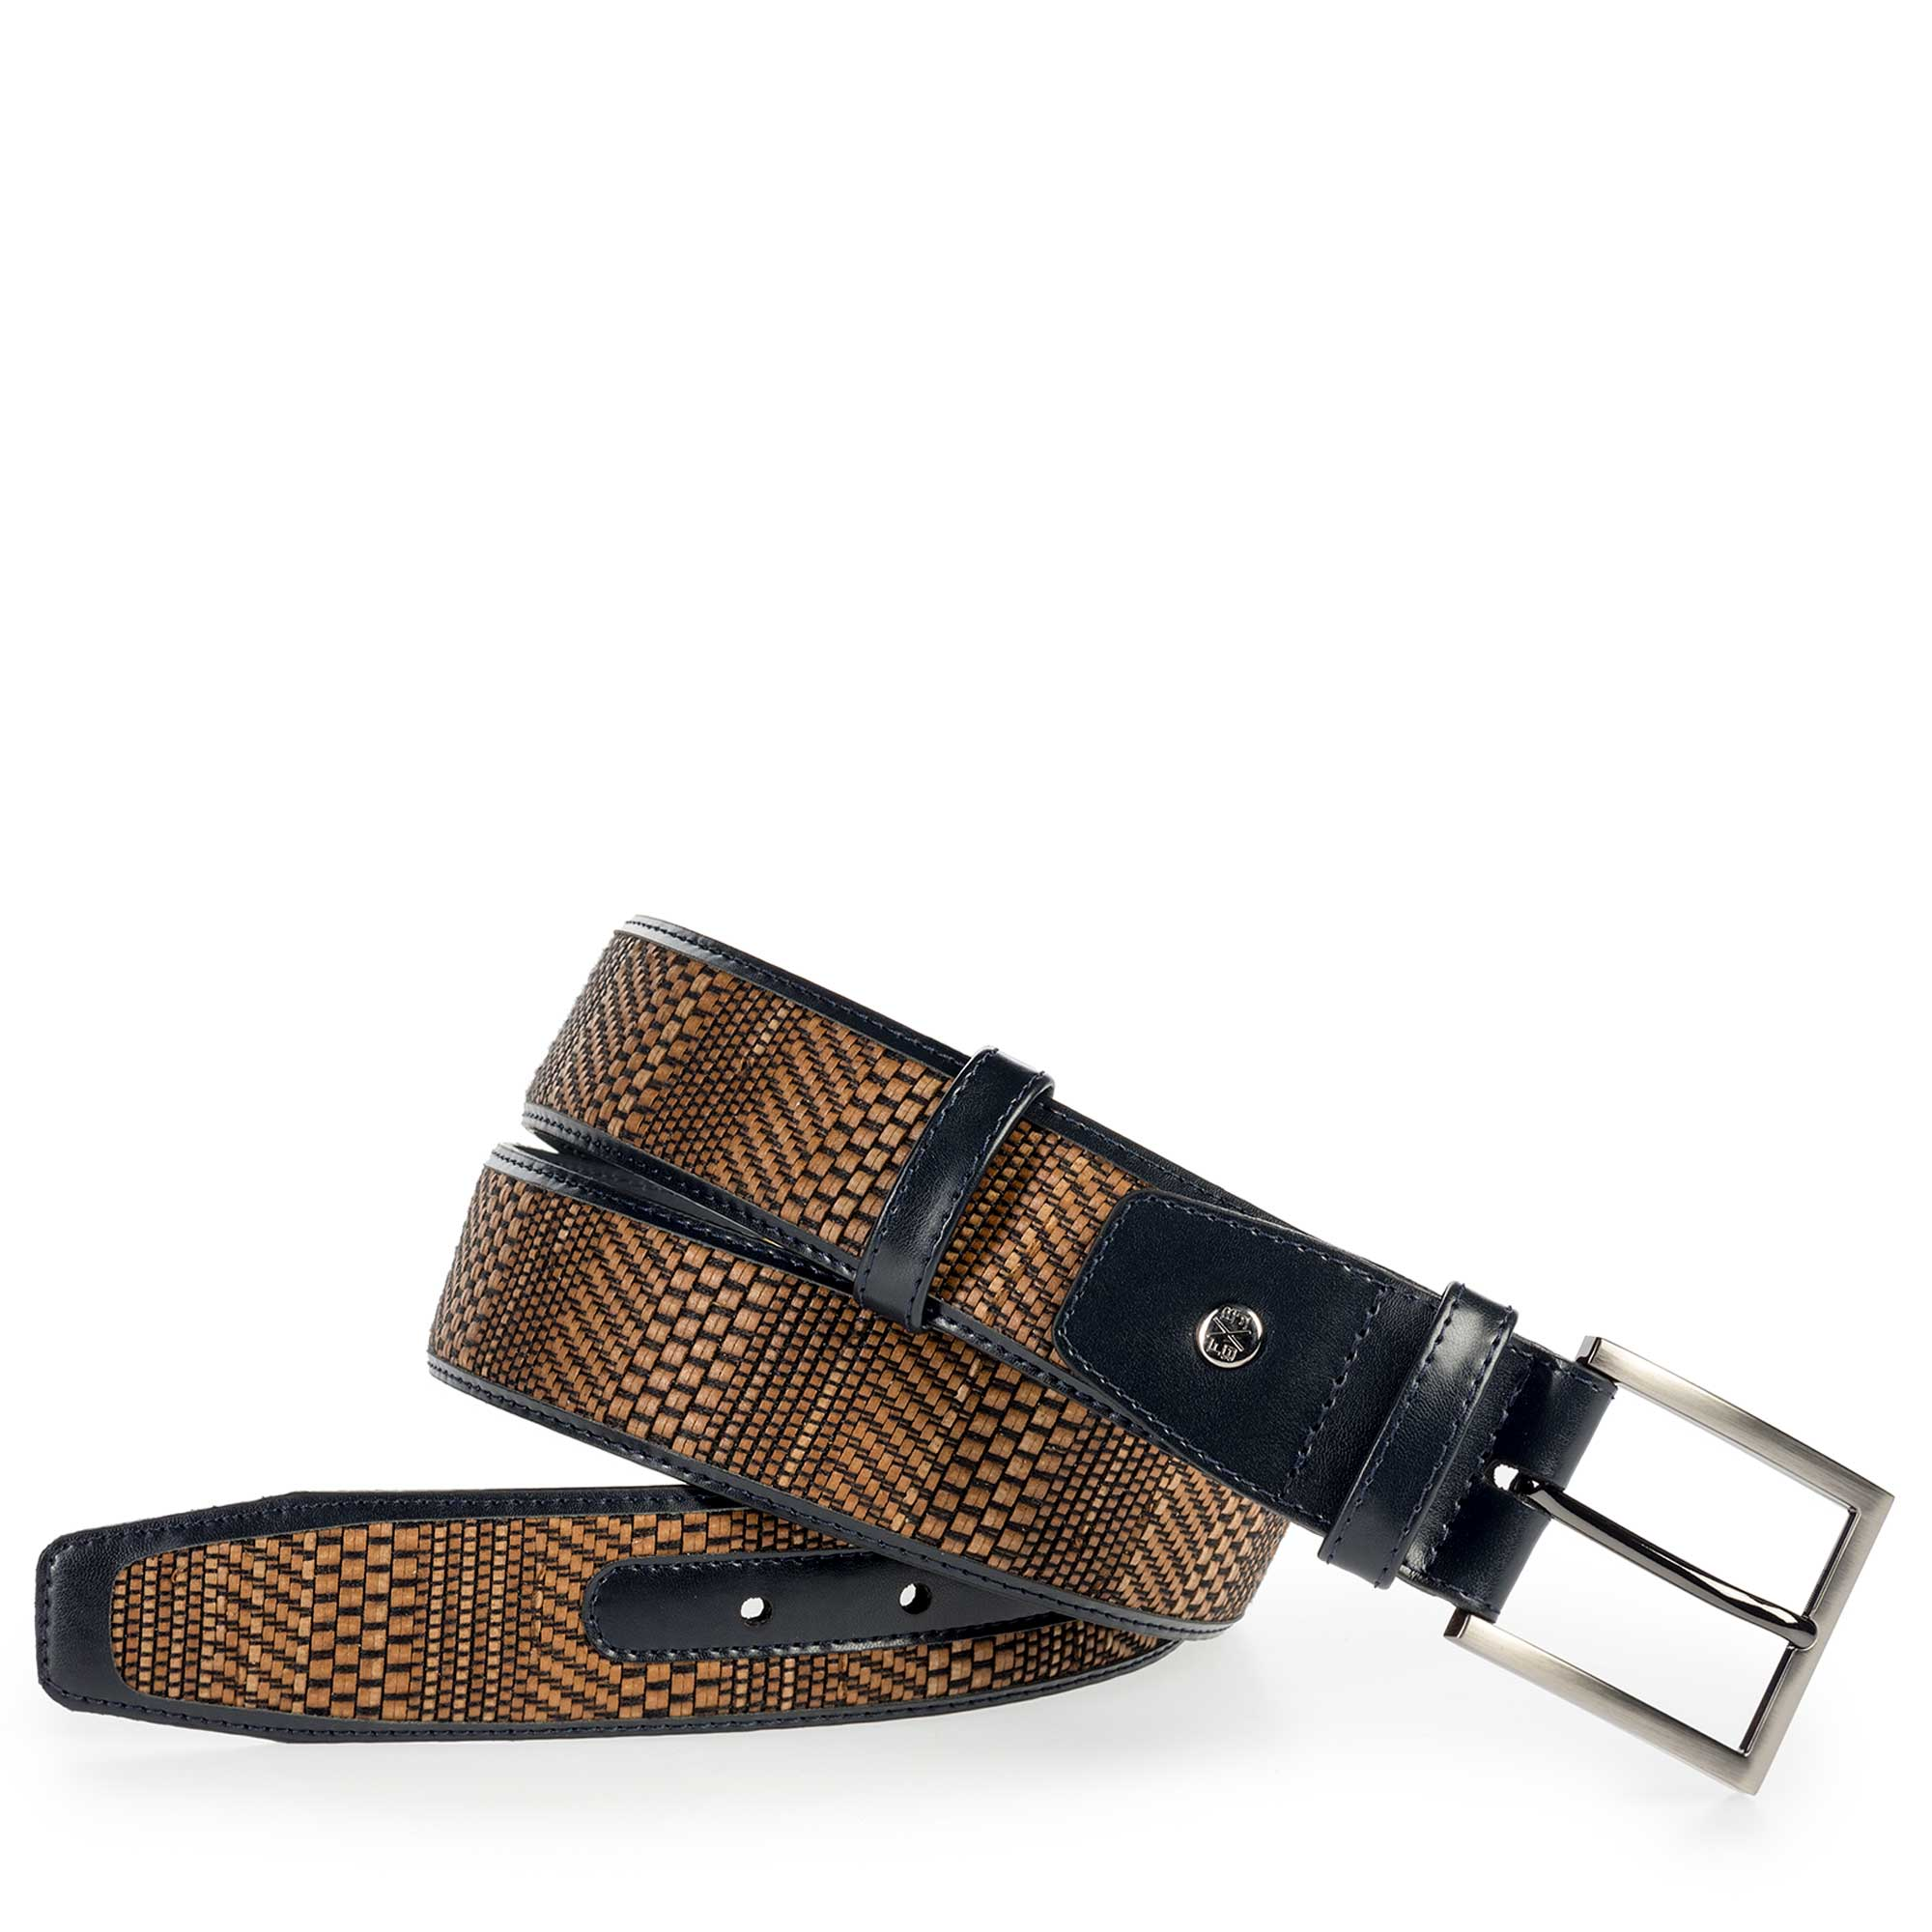 75159/03 - Floris van Bommel leather men's belt